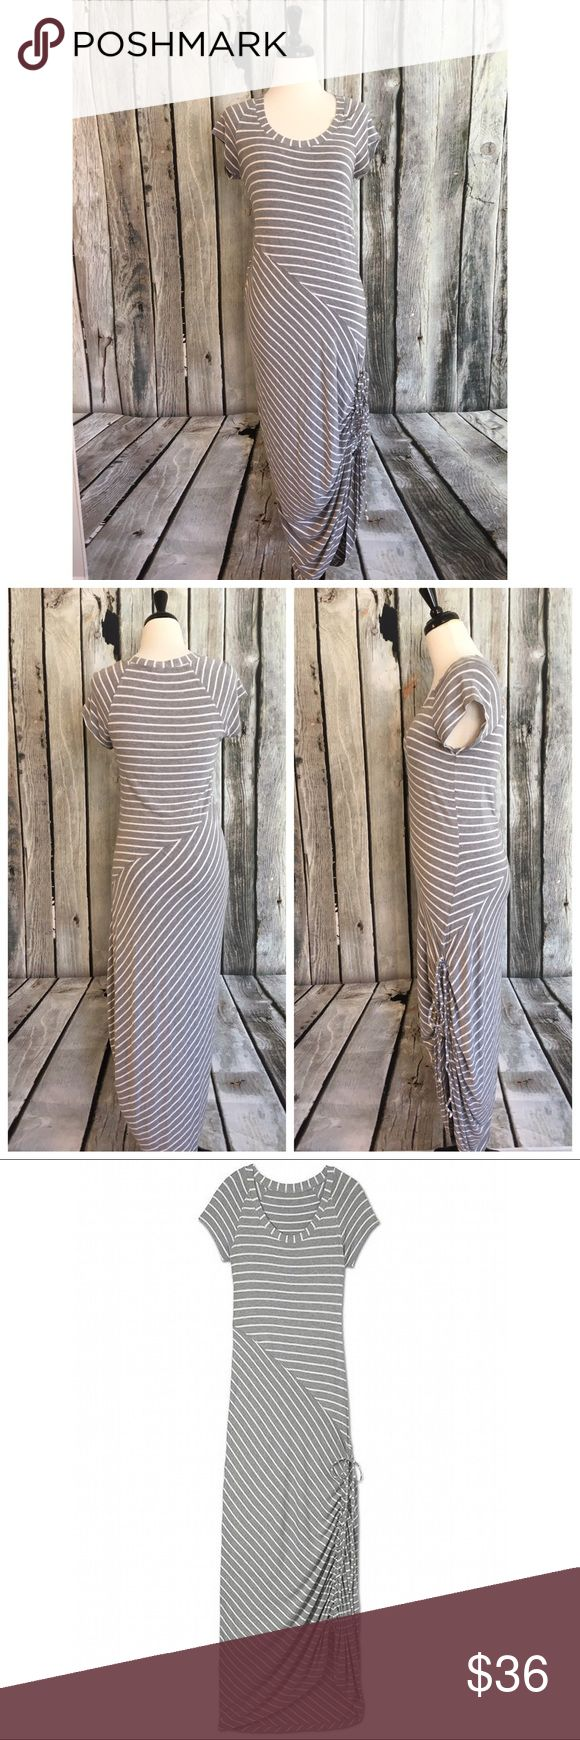 Athleta Dusky Shark Bite Gray Striped Ruched Dress Athleta Dusky Shark Bite dress in gray stripes with side hem ruching, women's M.   Bust across is 15 in, waist is 14.5 in and length is 57 in. Athleta Dresses Maxi